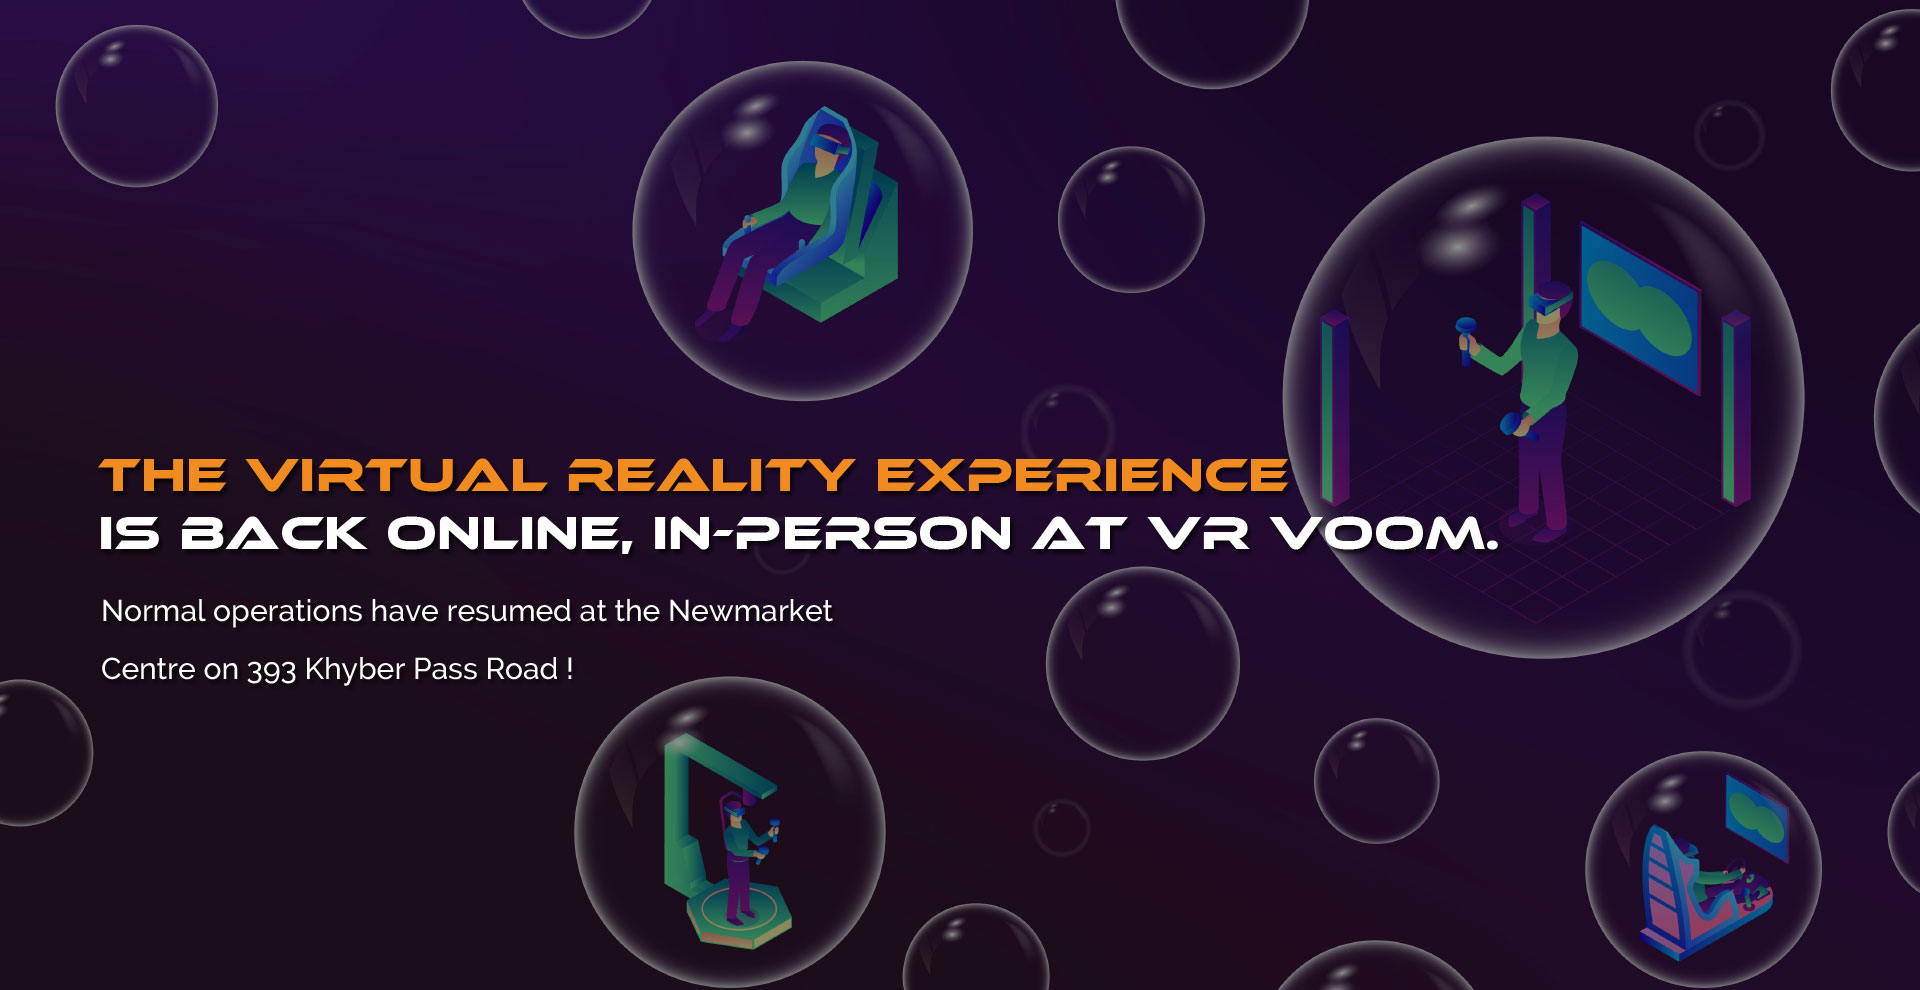 The Virtual Reality experience is back online, in-person at VR Voom